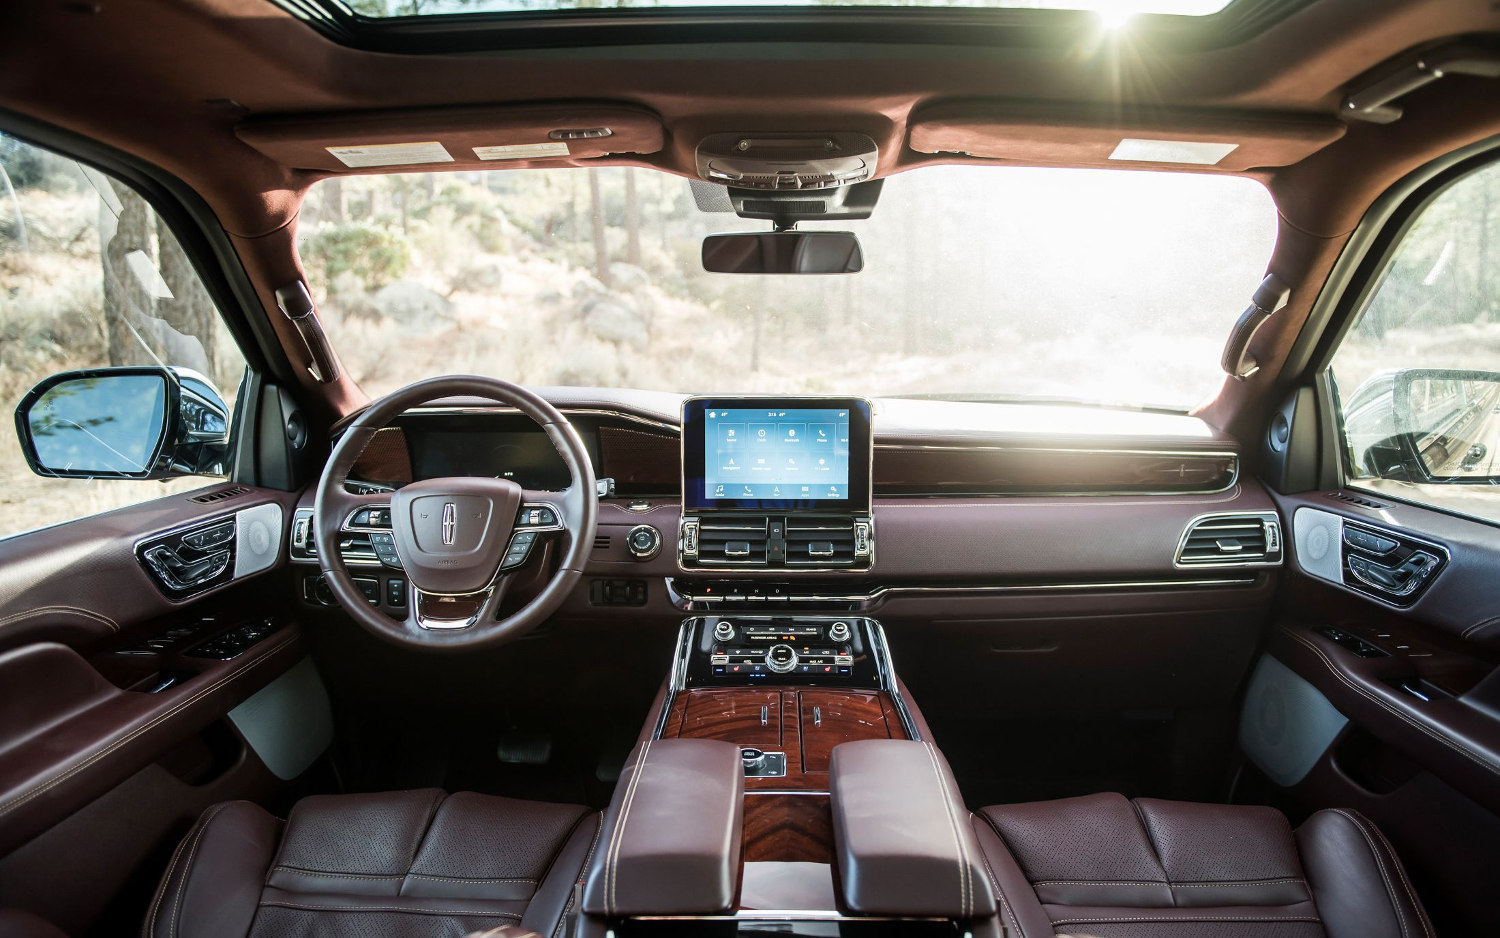 Dave Sinclair Lincoln >> lincoln navigator interior 2015 | Decoratingspecial.com